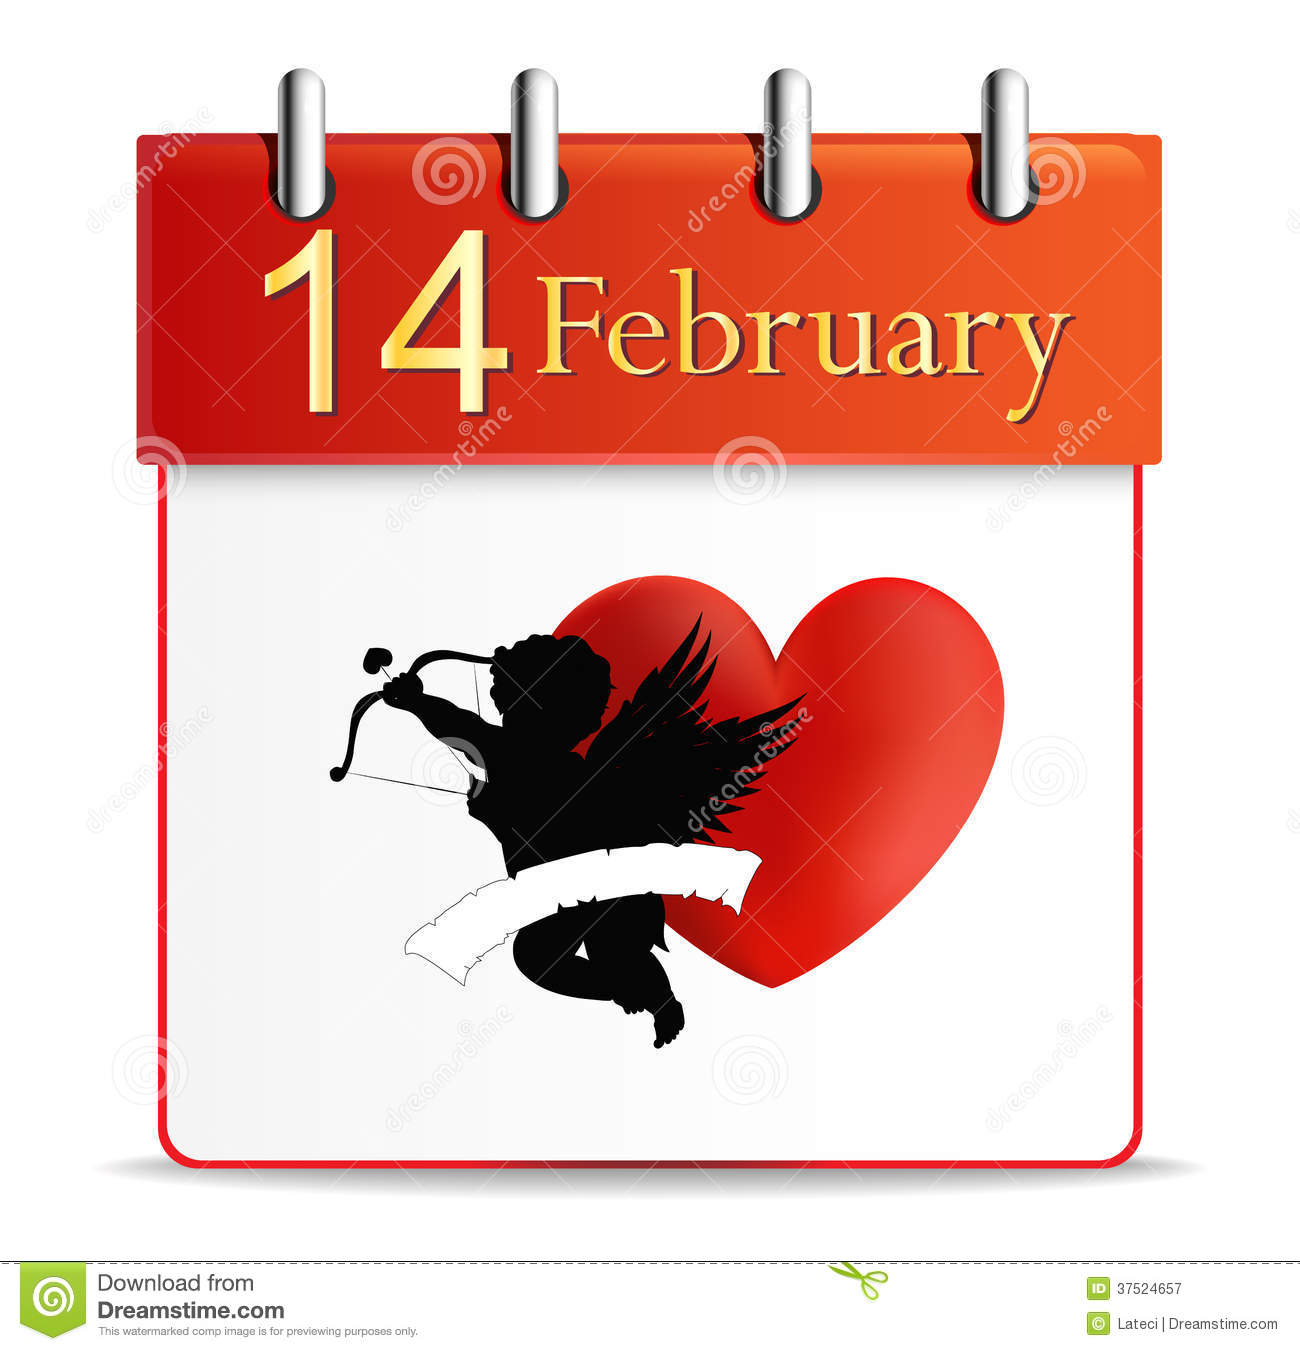 February Calendar Illustration : Valentines day calendar date february royalty free stock